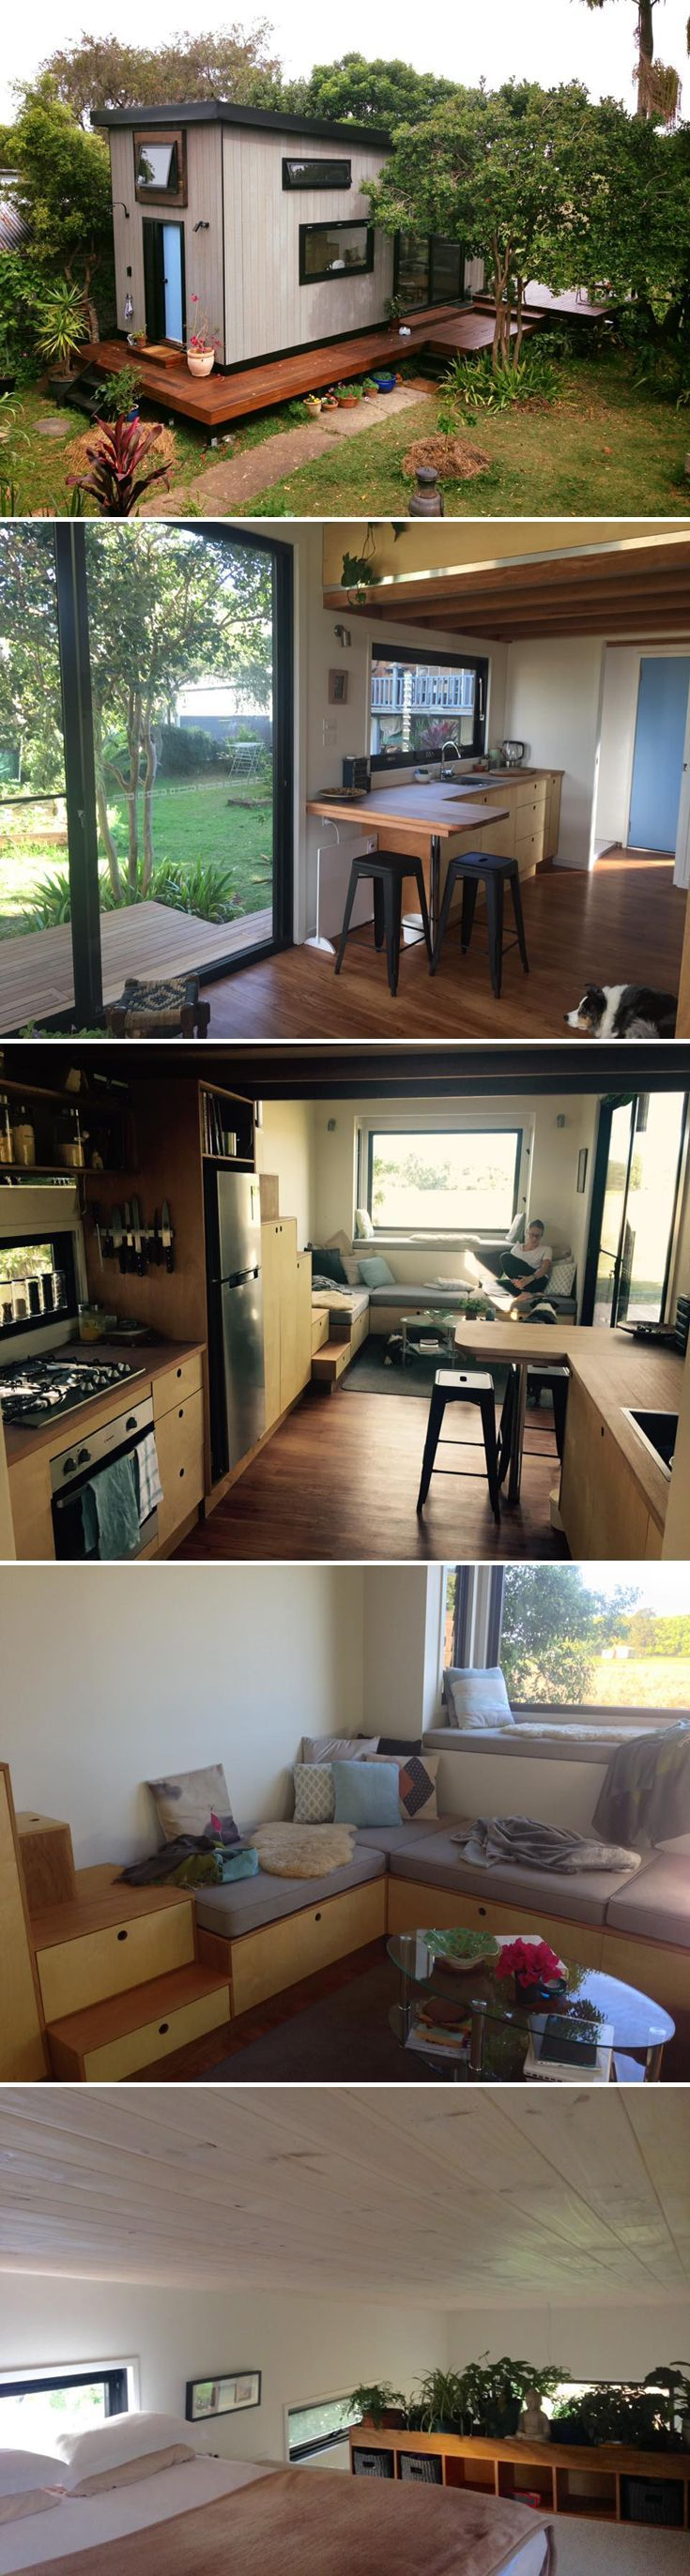 30 fuß vor hause design  best tiny house  minihaus images on pinterest  small houses